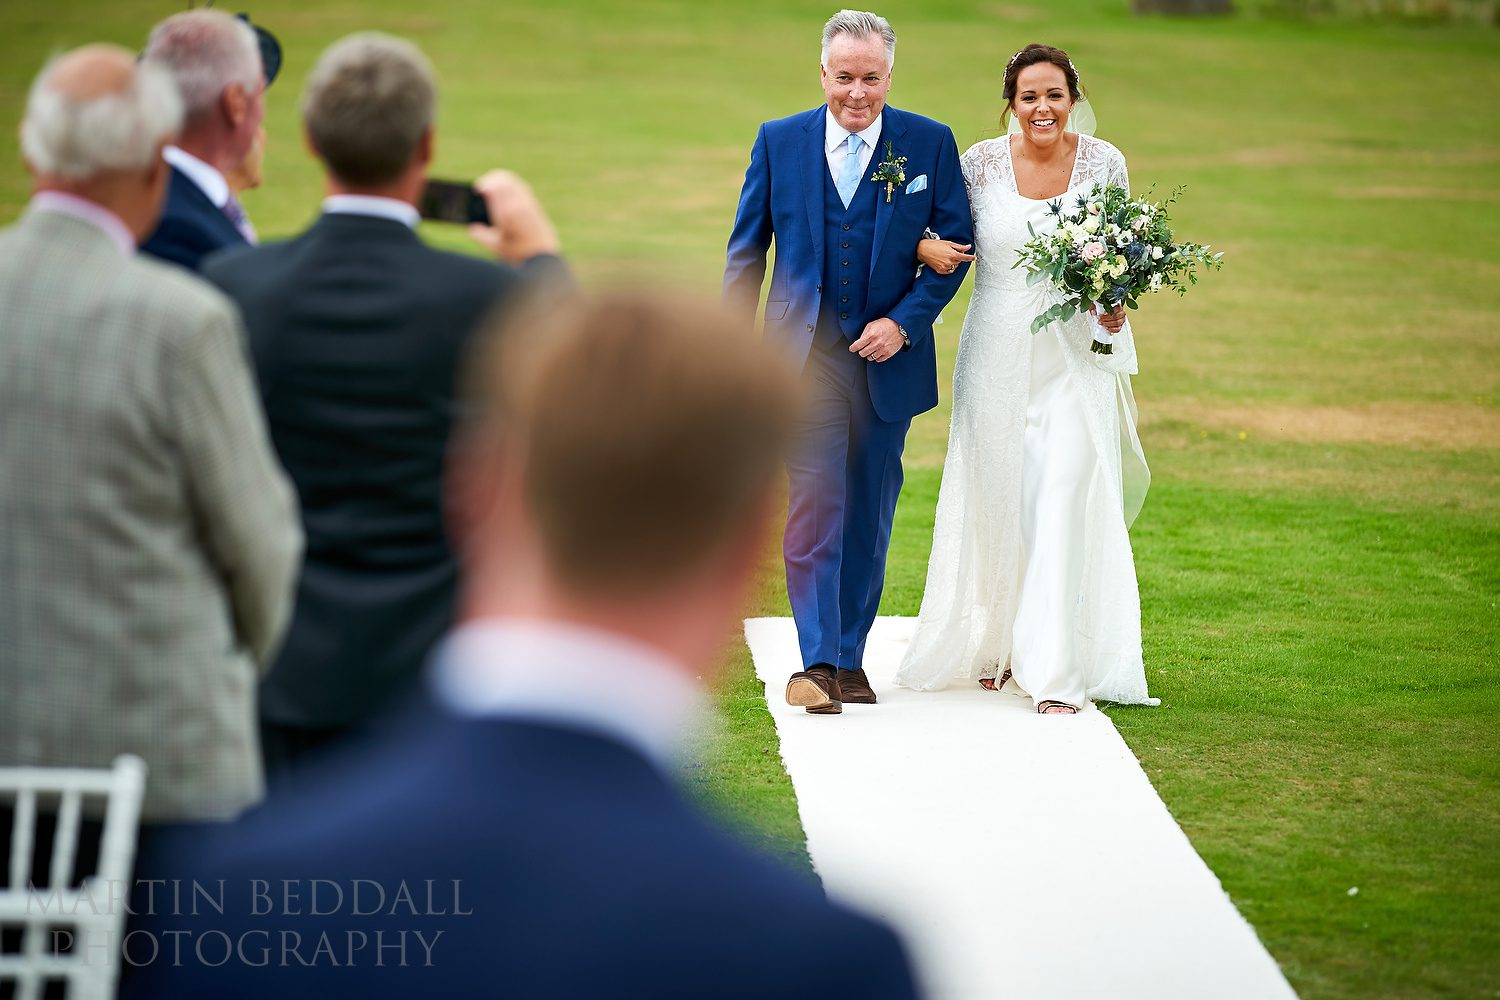 Buxted Park outdoor wedding ceremony